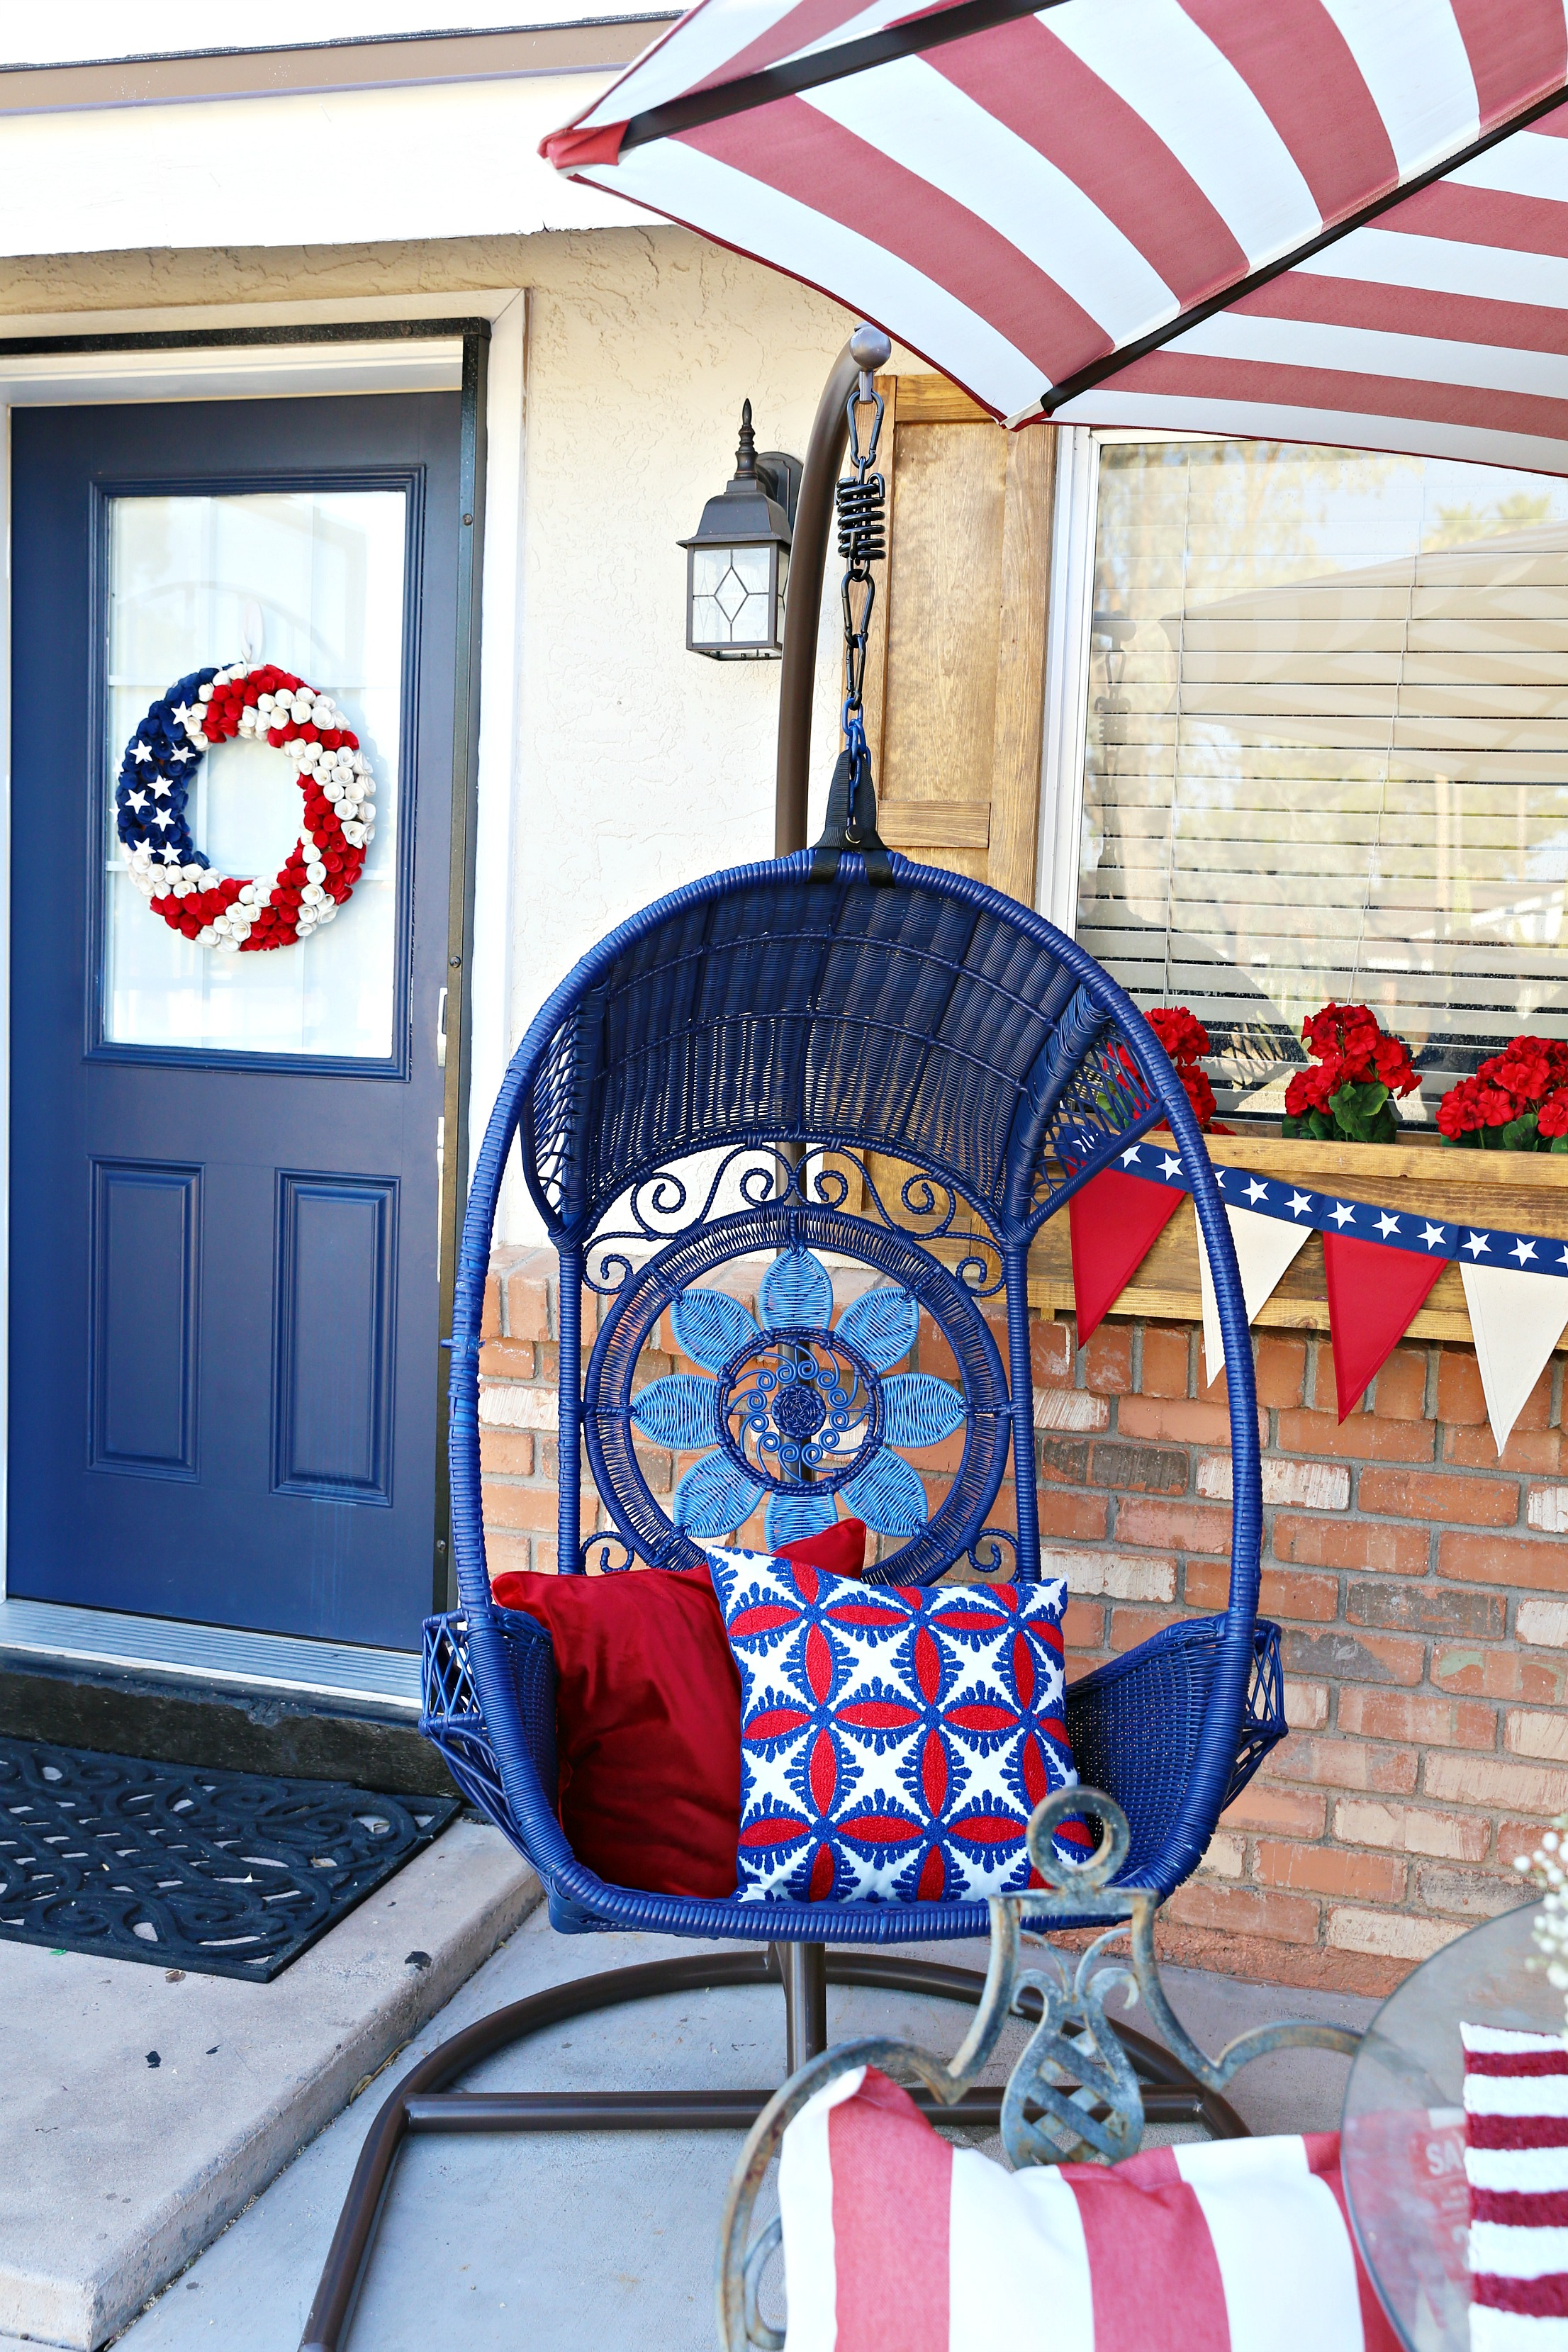 Pier 1 4th of July decor